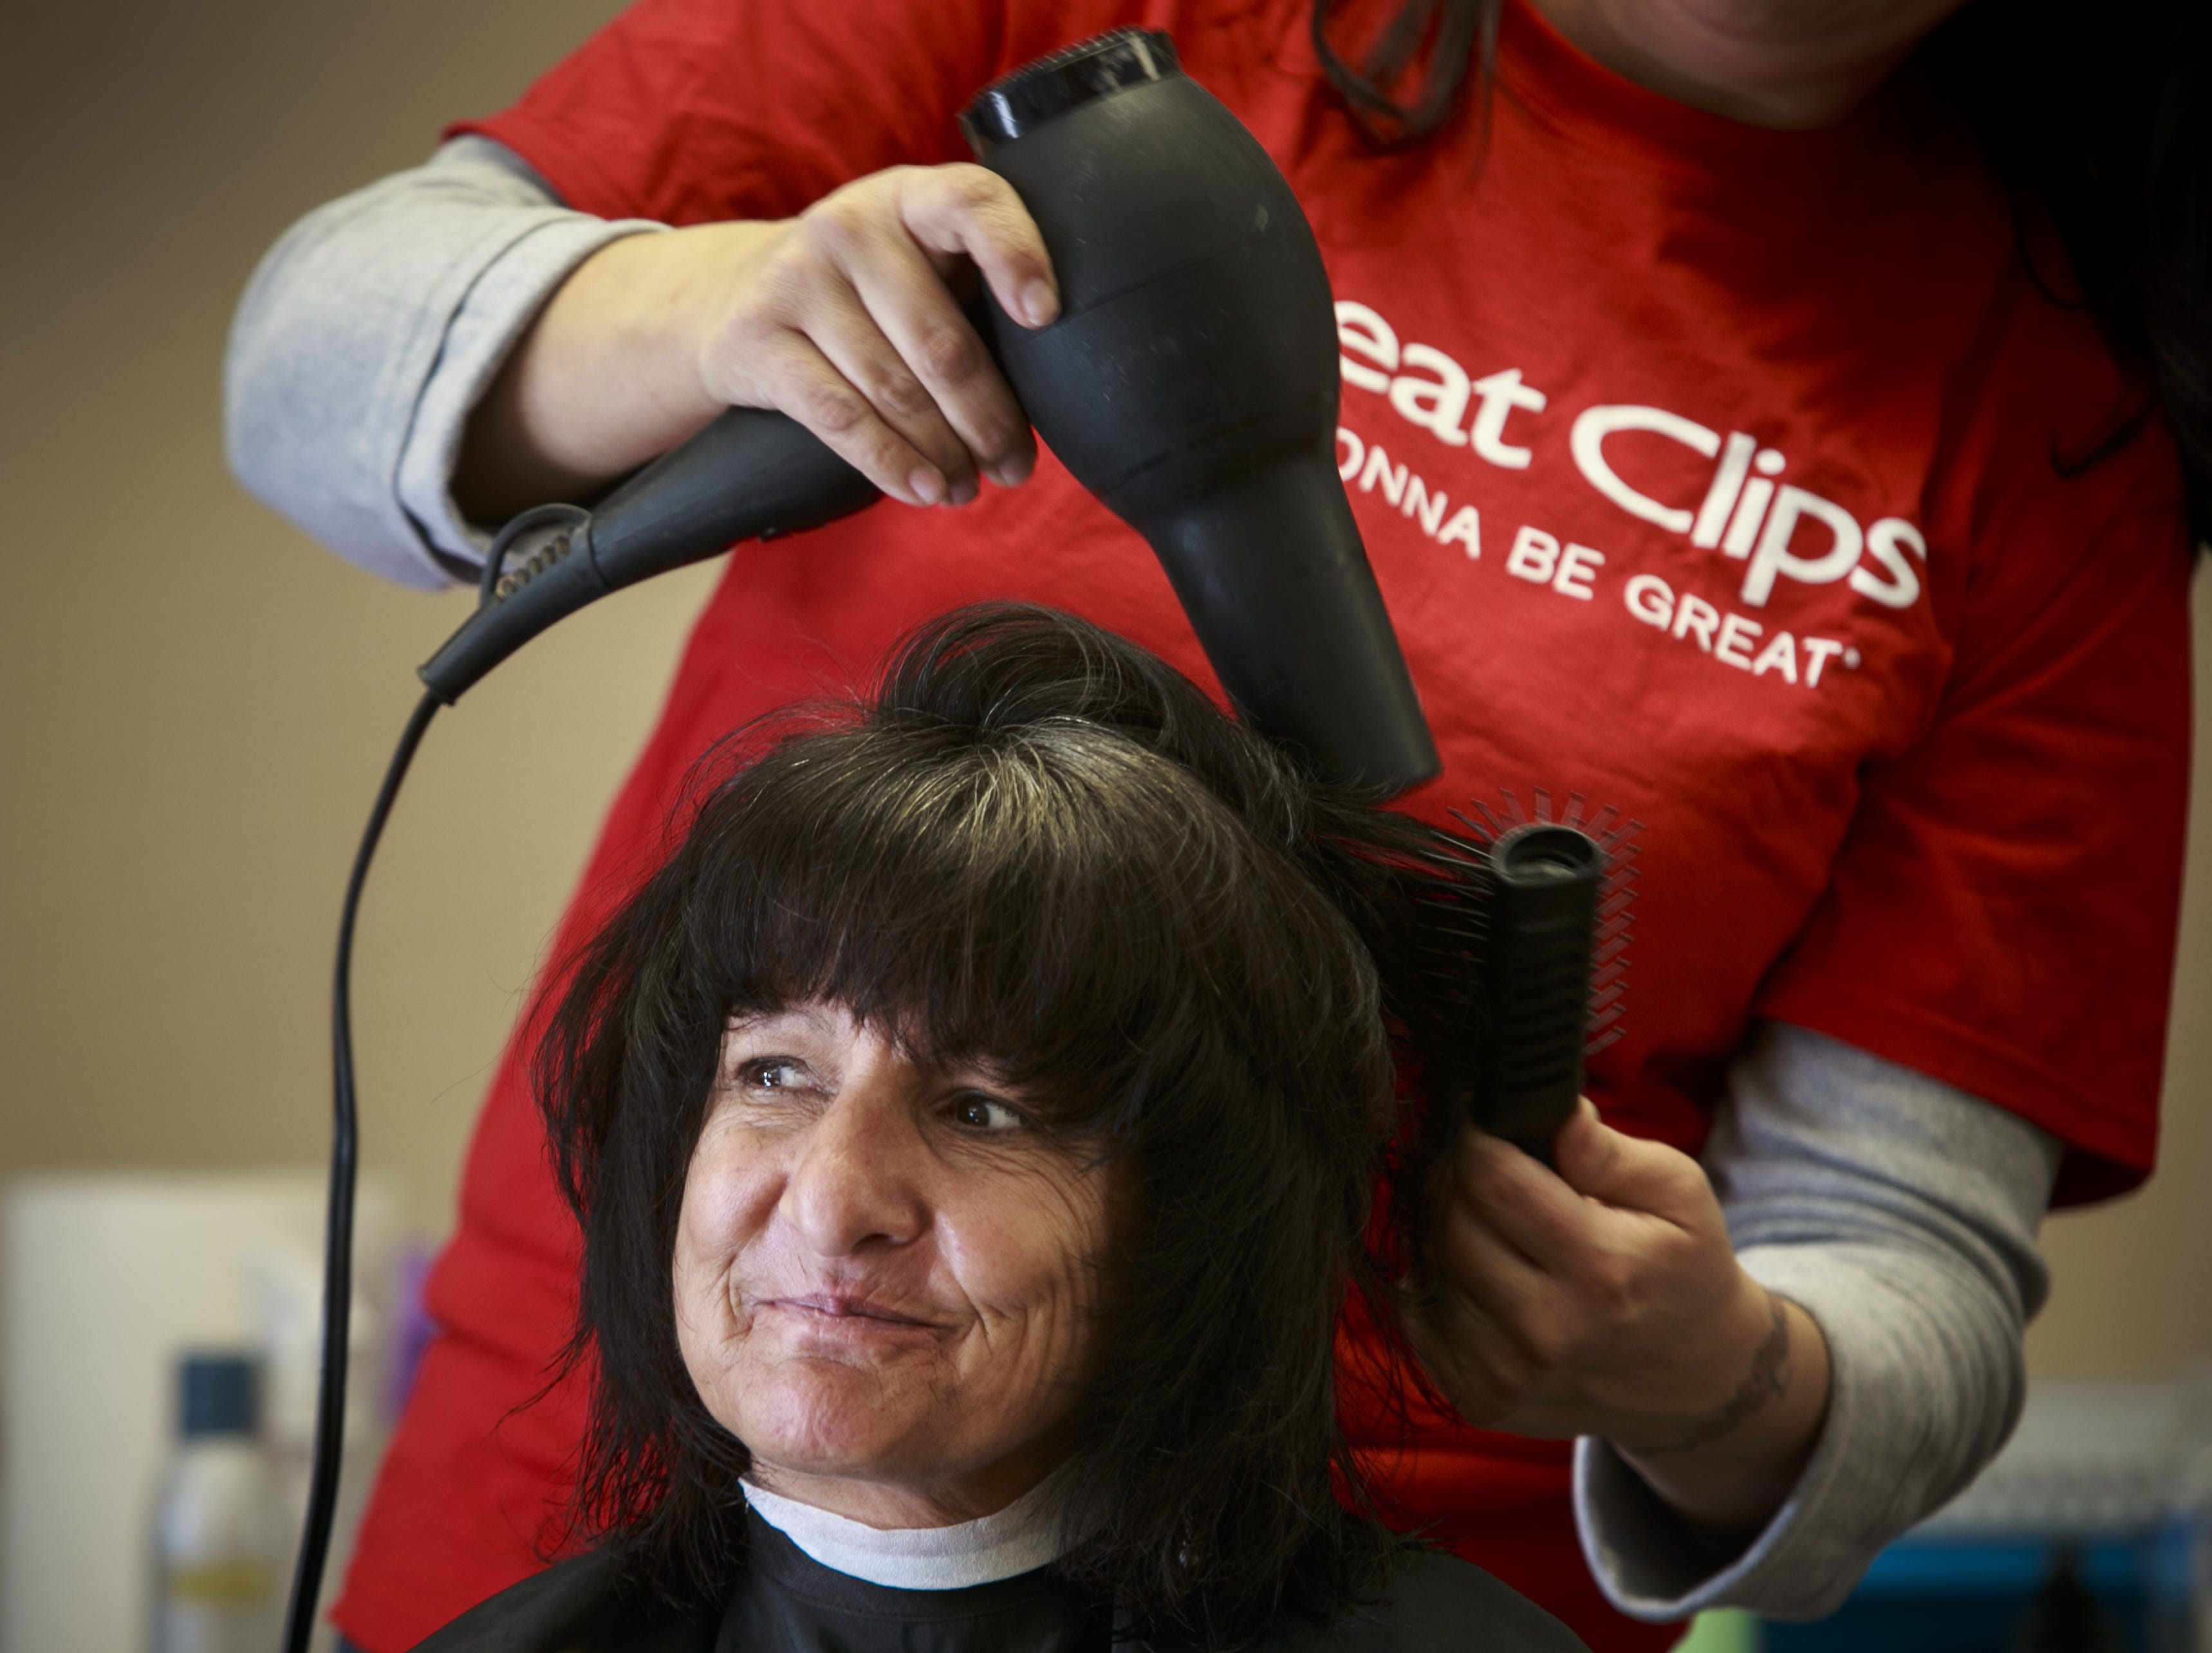 Great Clips, hiring 210. The company operates hair salons across Arizona. Locations with openings include Casa Grande, Buckeye, Mesa and Phoenix. More info: jobs.greatclips.com.